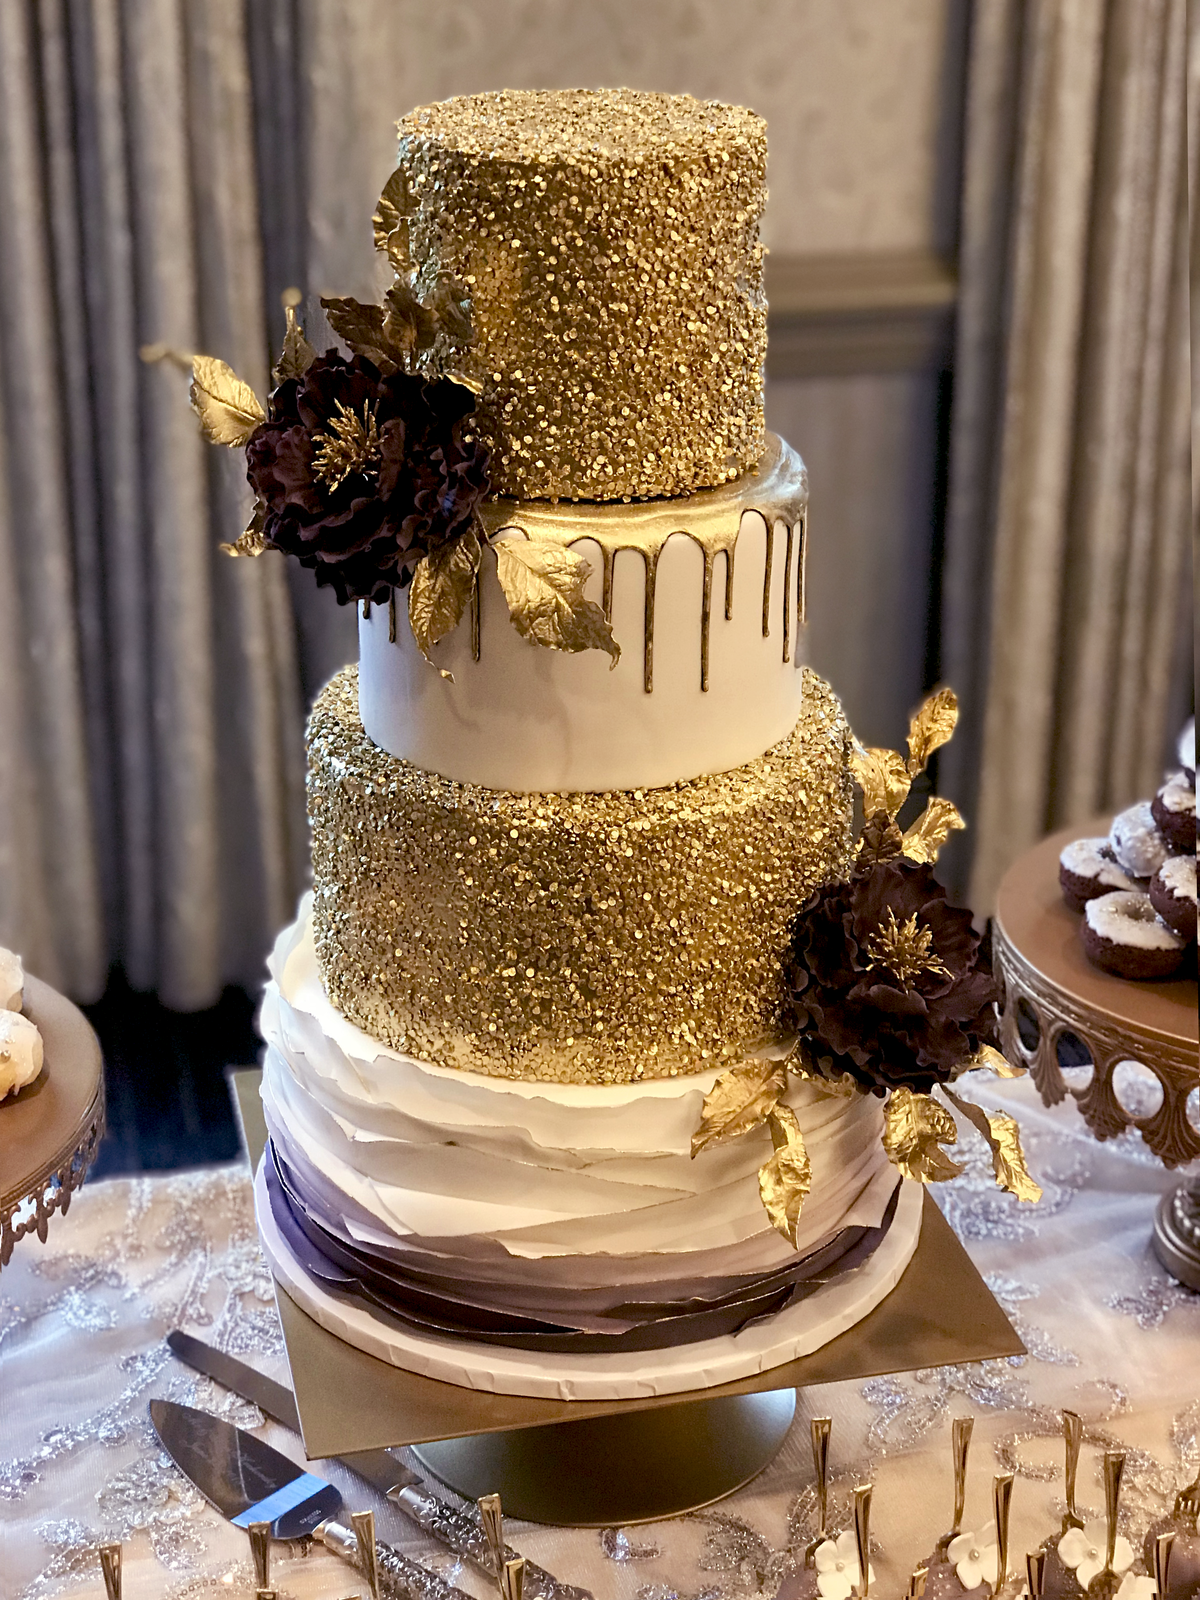 Whippt Desserts - Rimrock Wedding June 2018 2